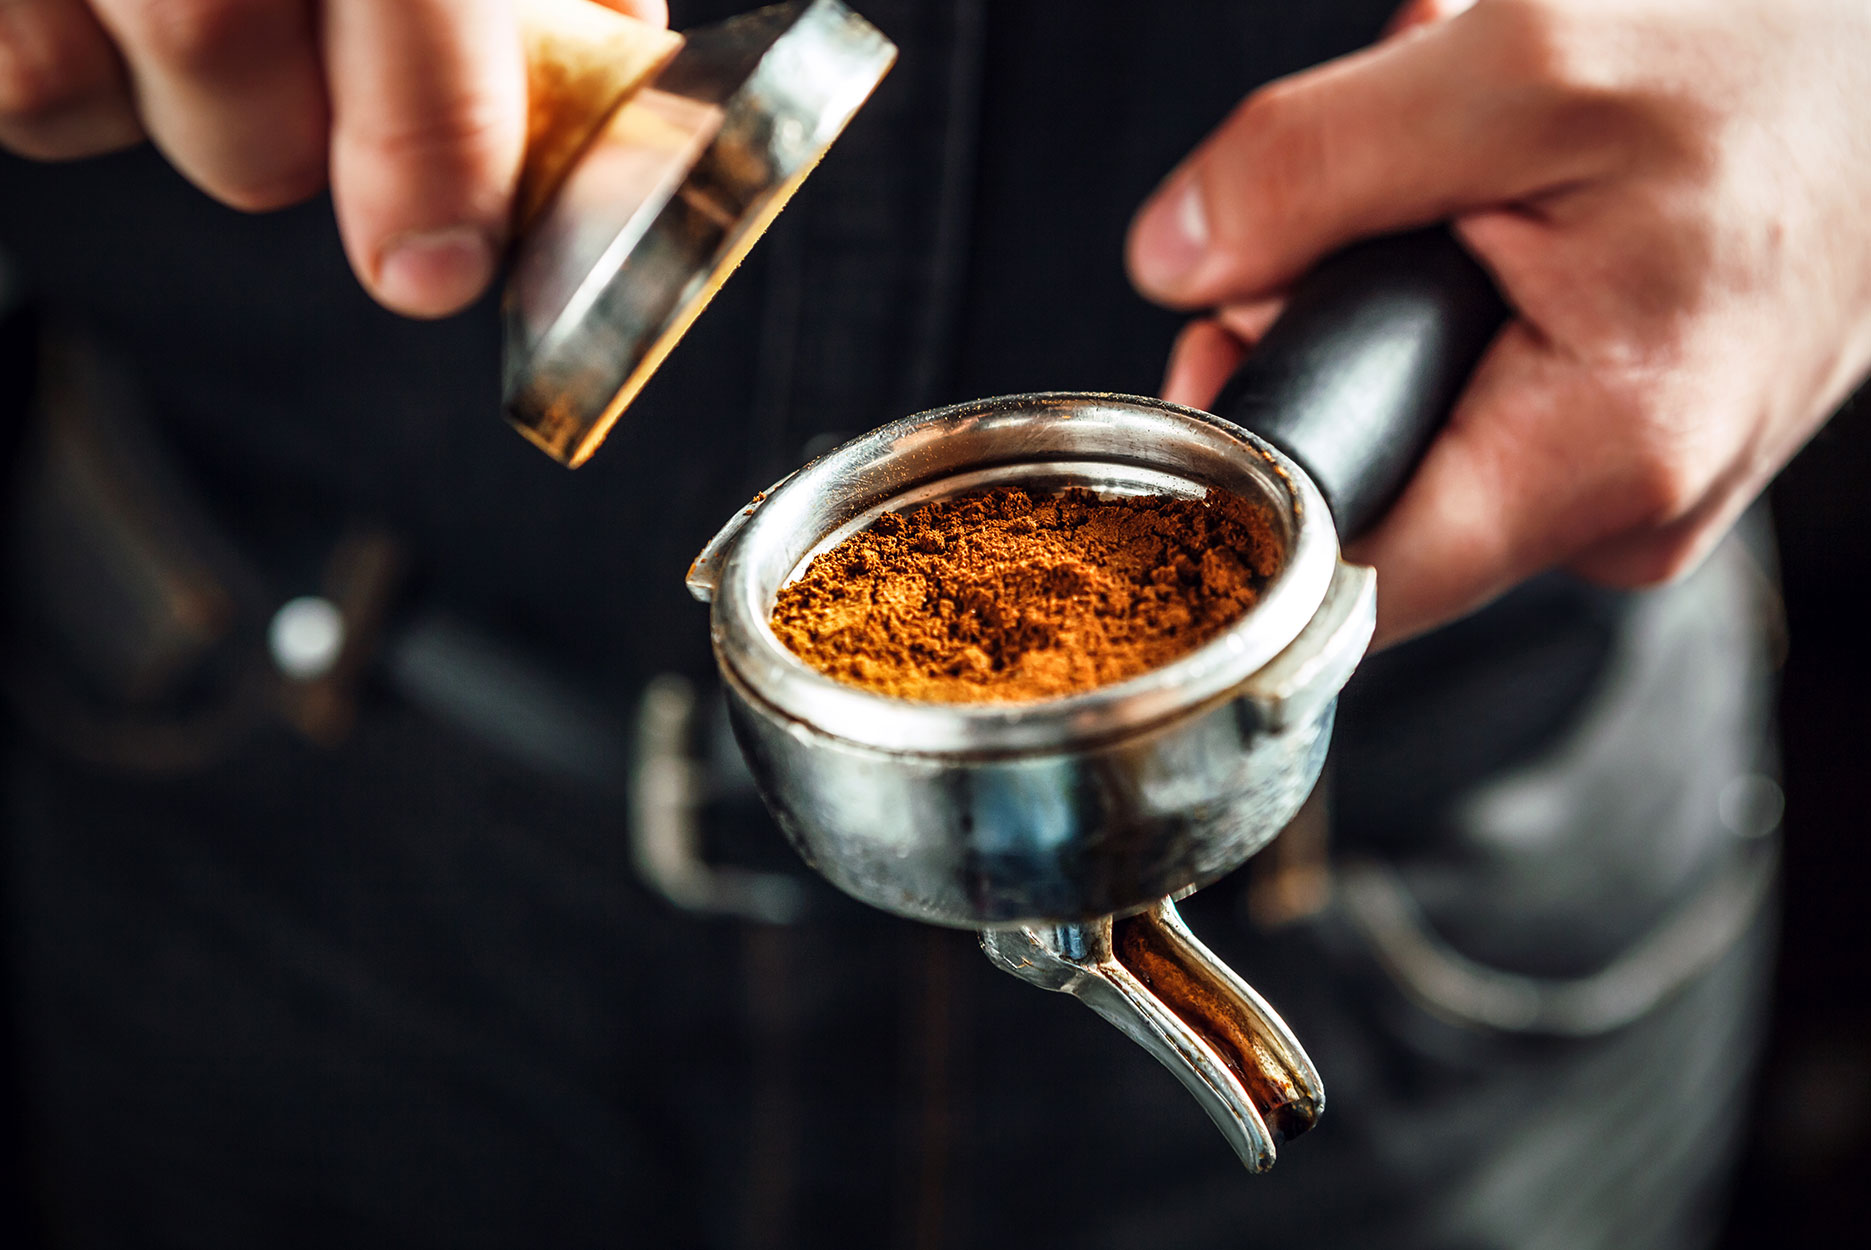 A barista preparing espresso for brewing